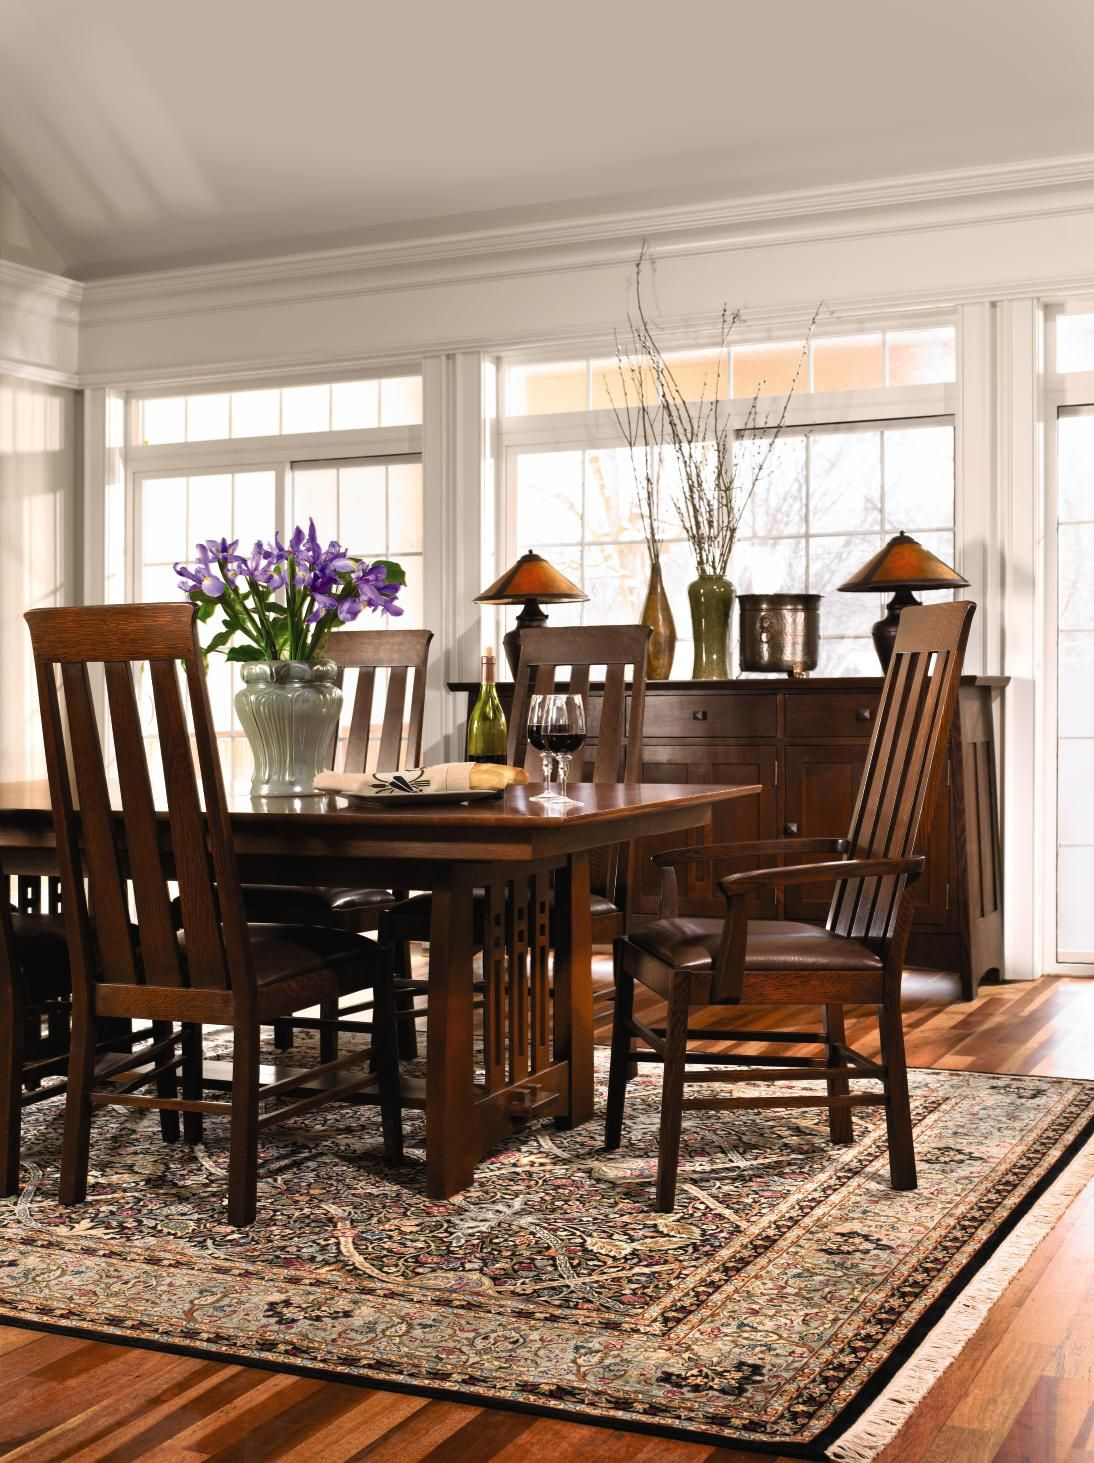 Stickley Dining Room Furniture: #Stickley Highlands Collection Style Blends Traditional